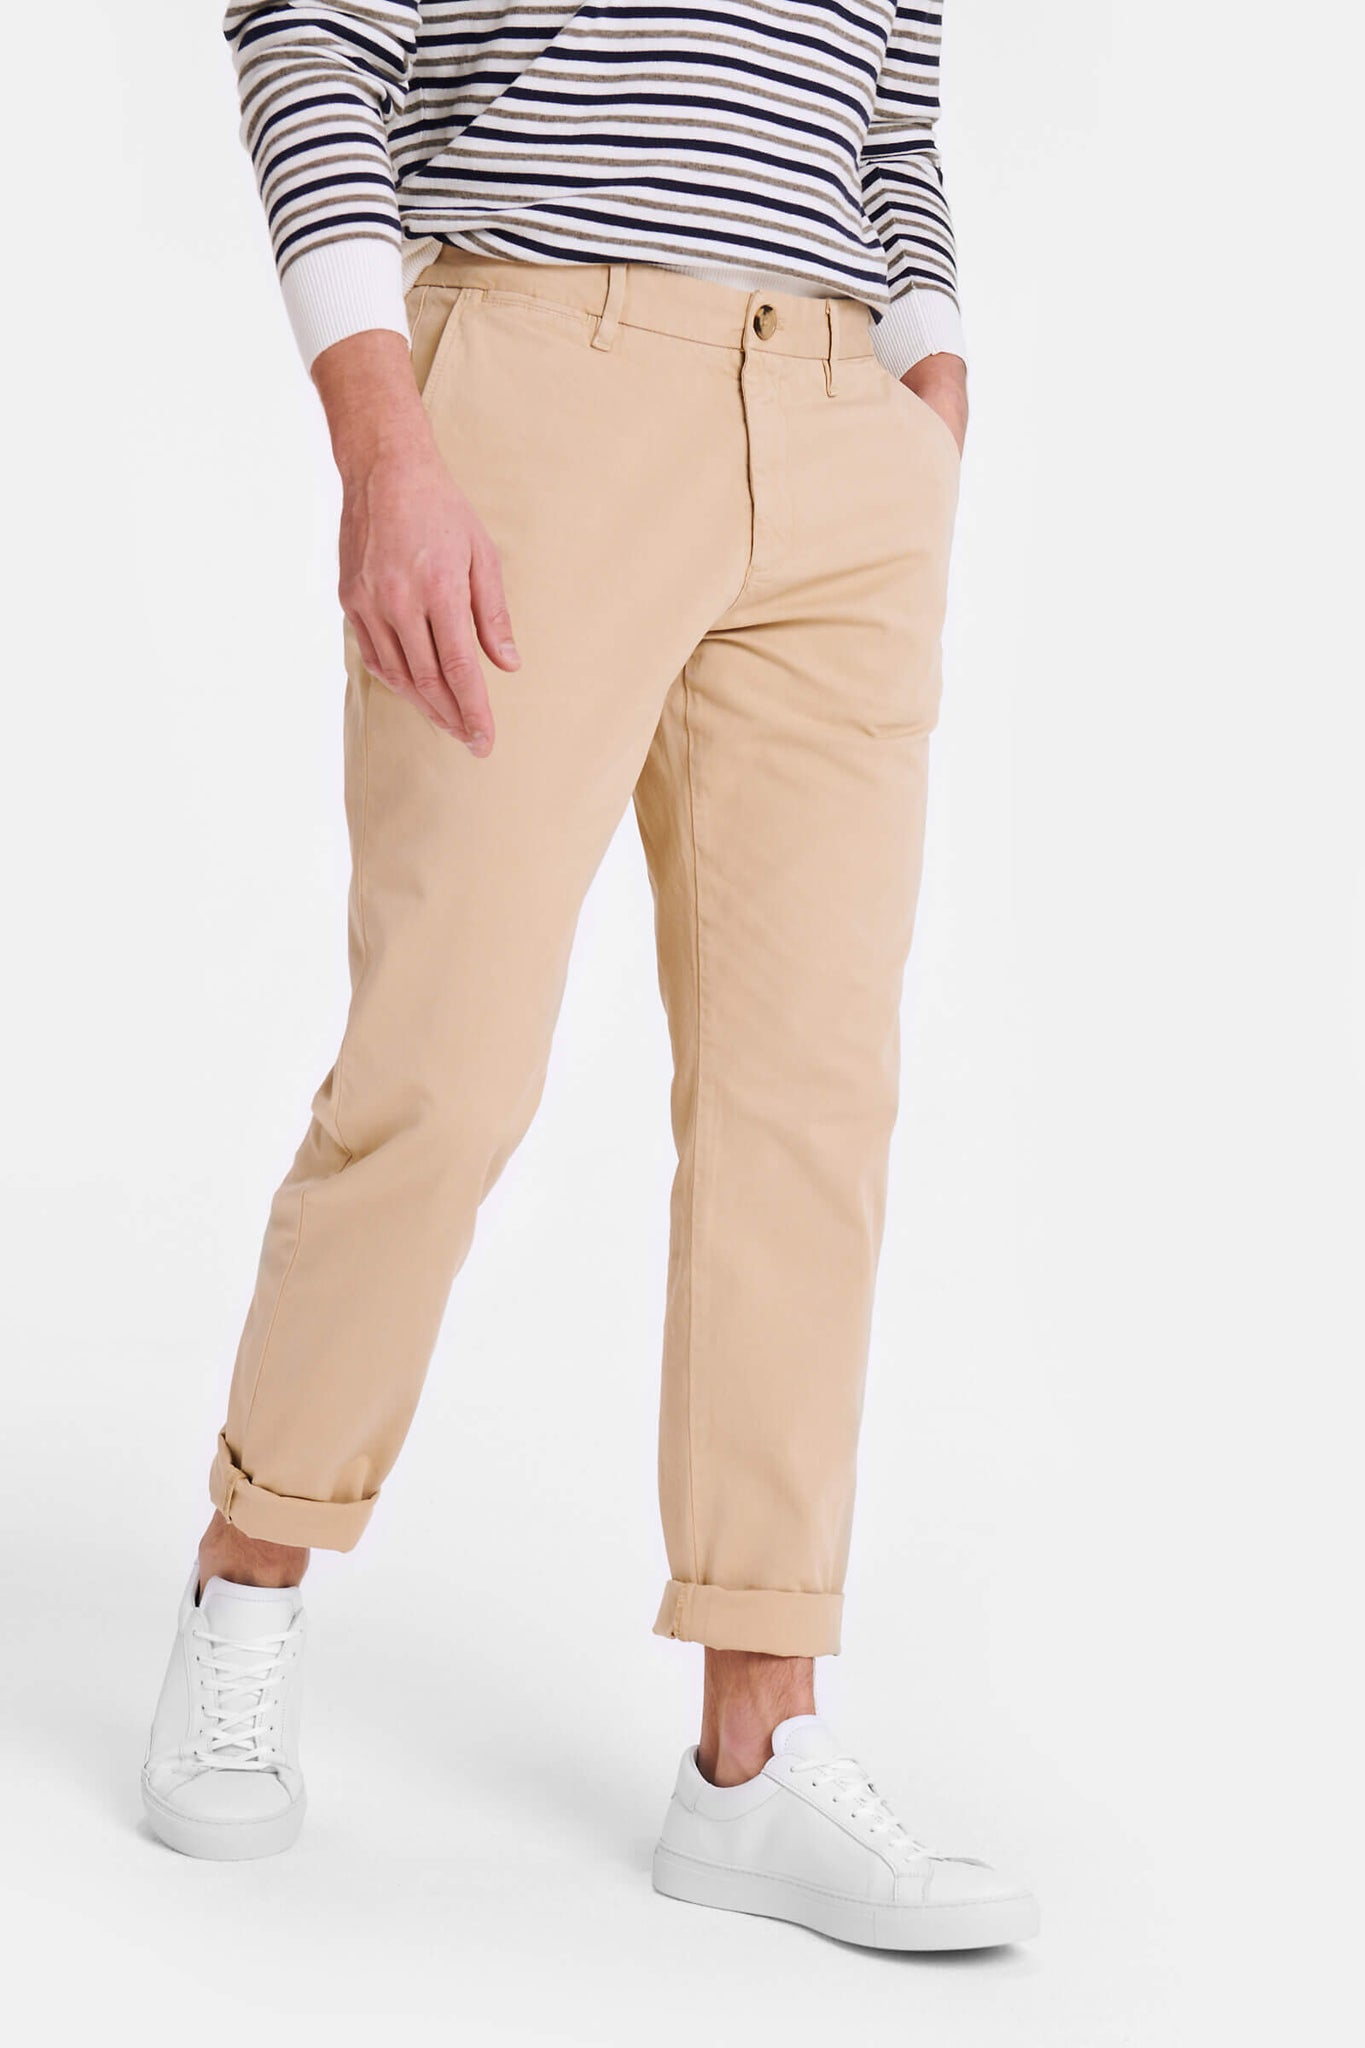 Regular fit Garment dyed chino